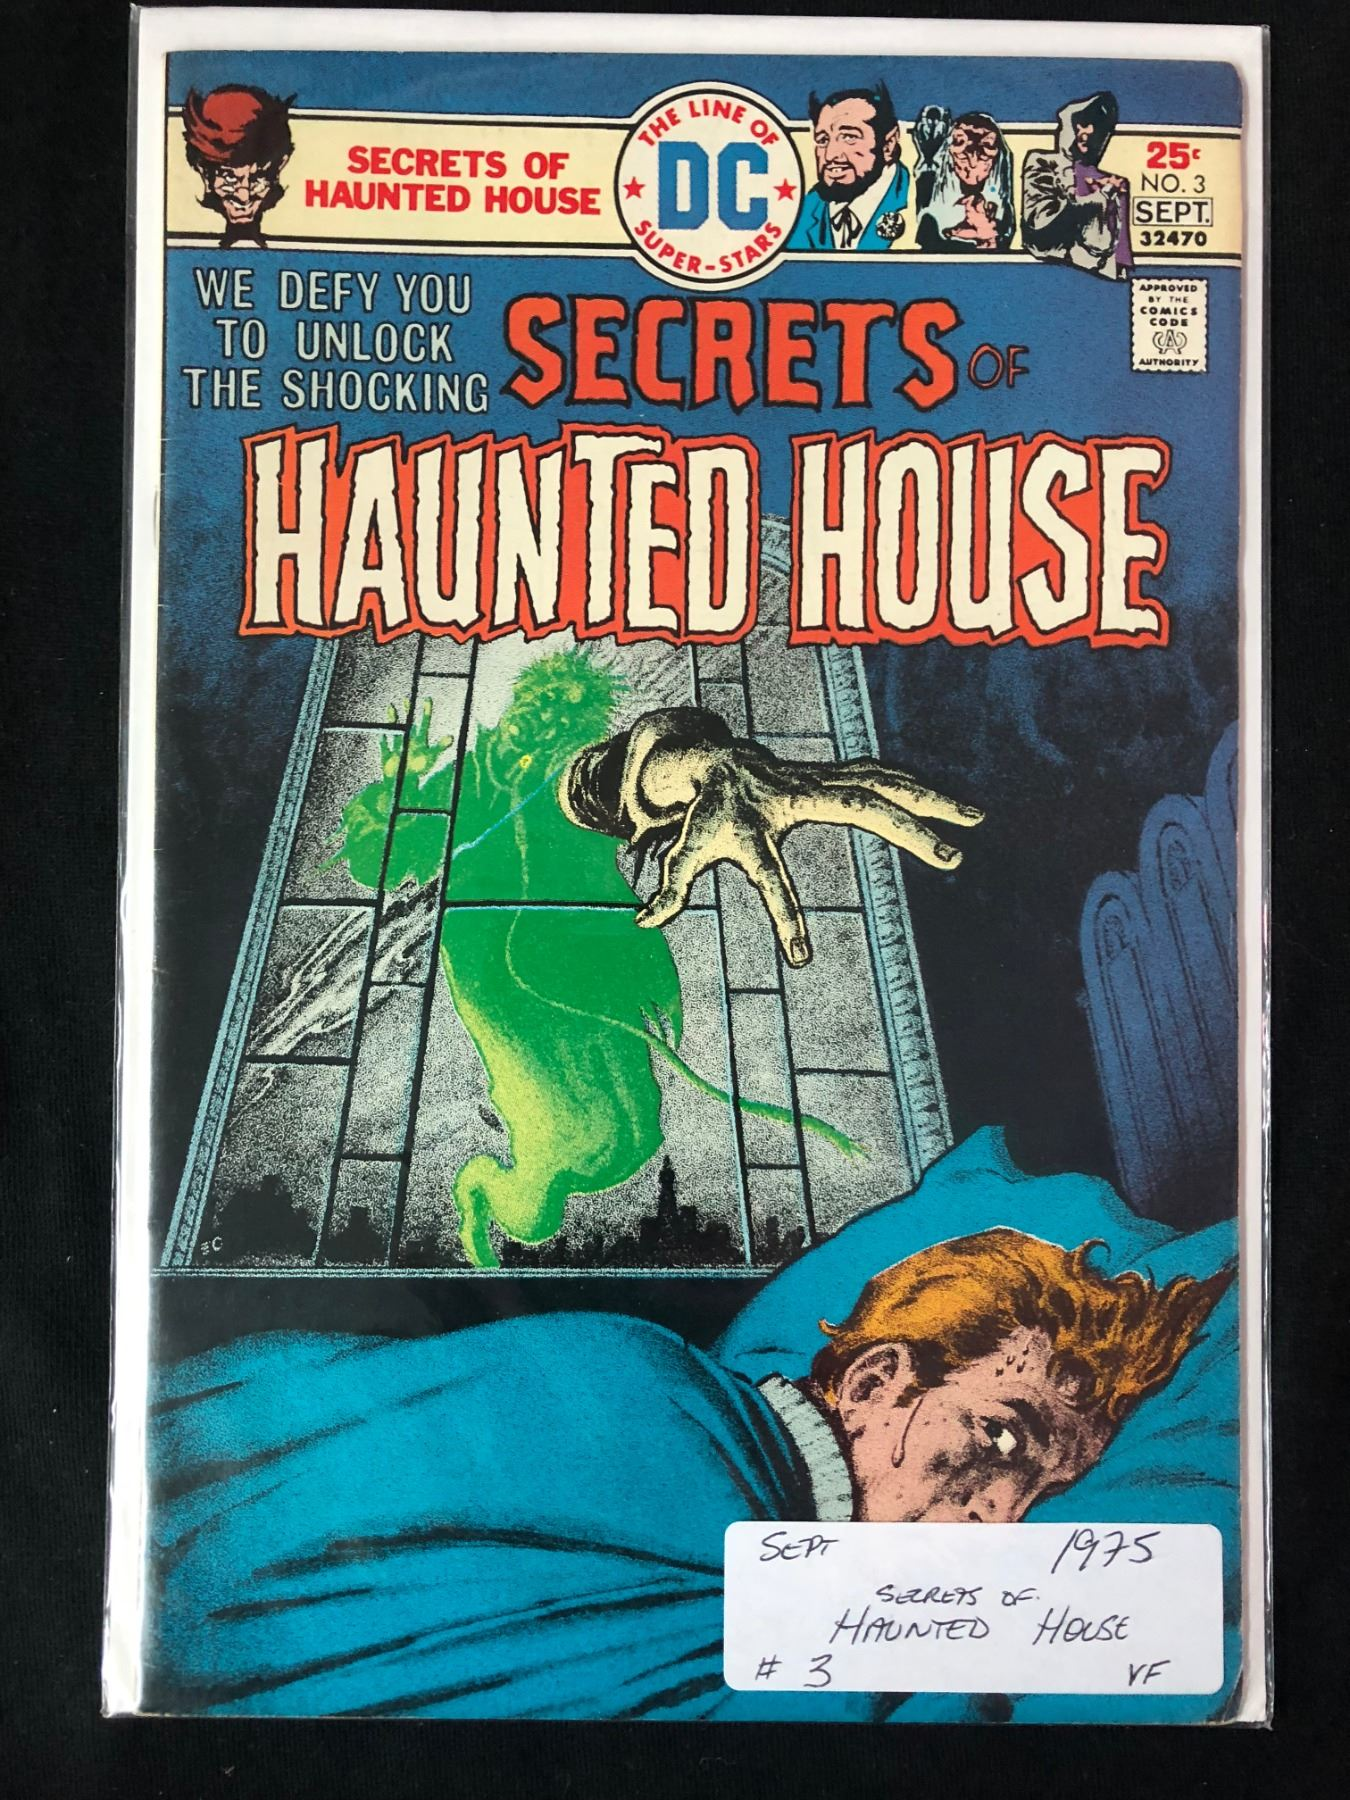 SECRETS OF HAUNTED HOUSE #3 (DC COMICS)